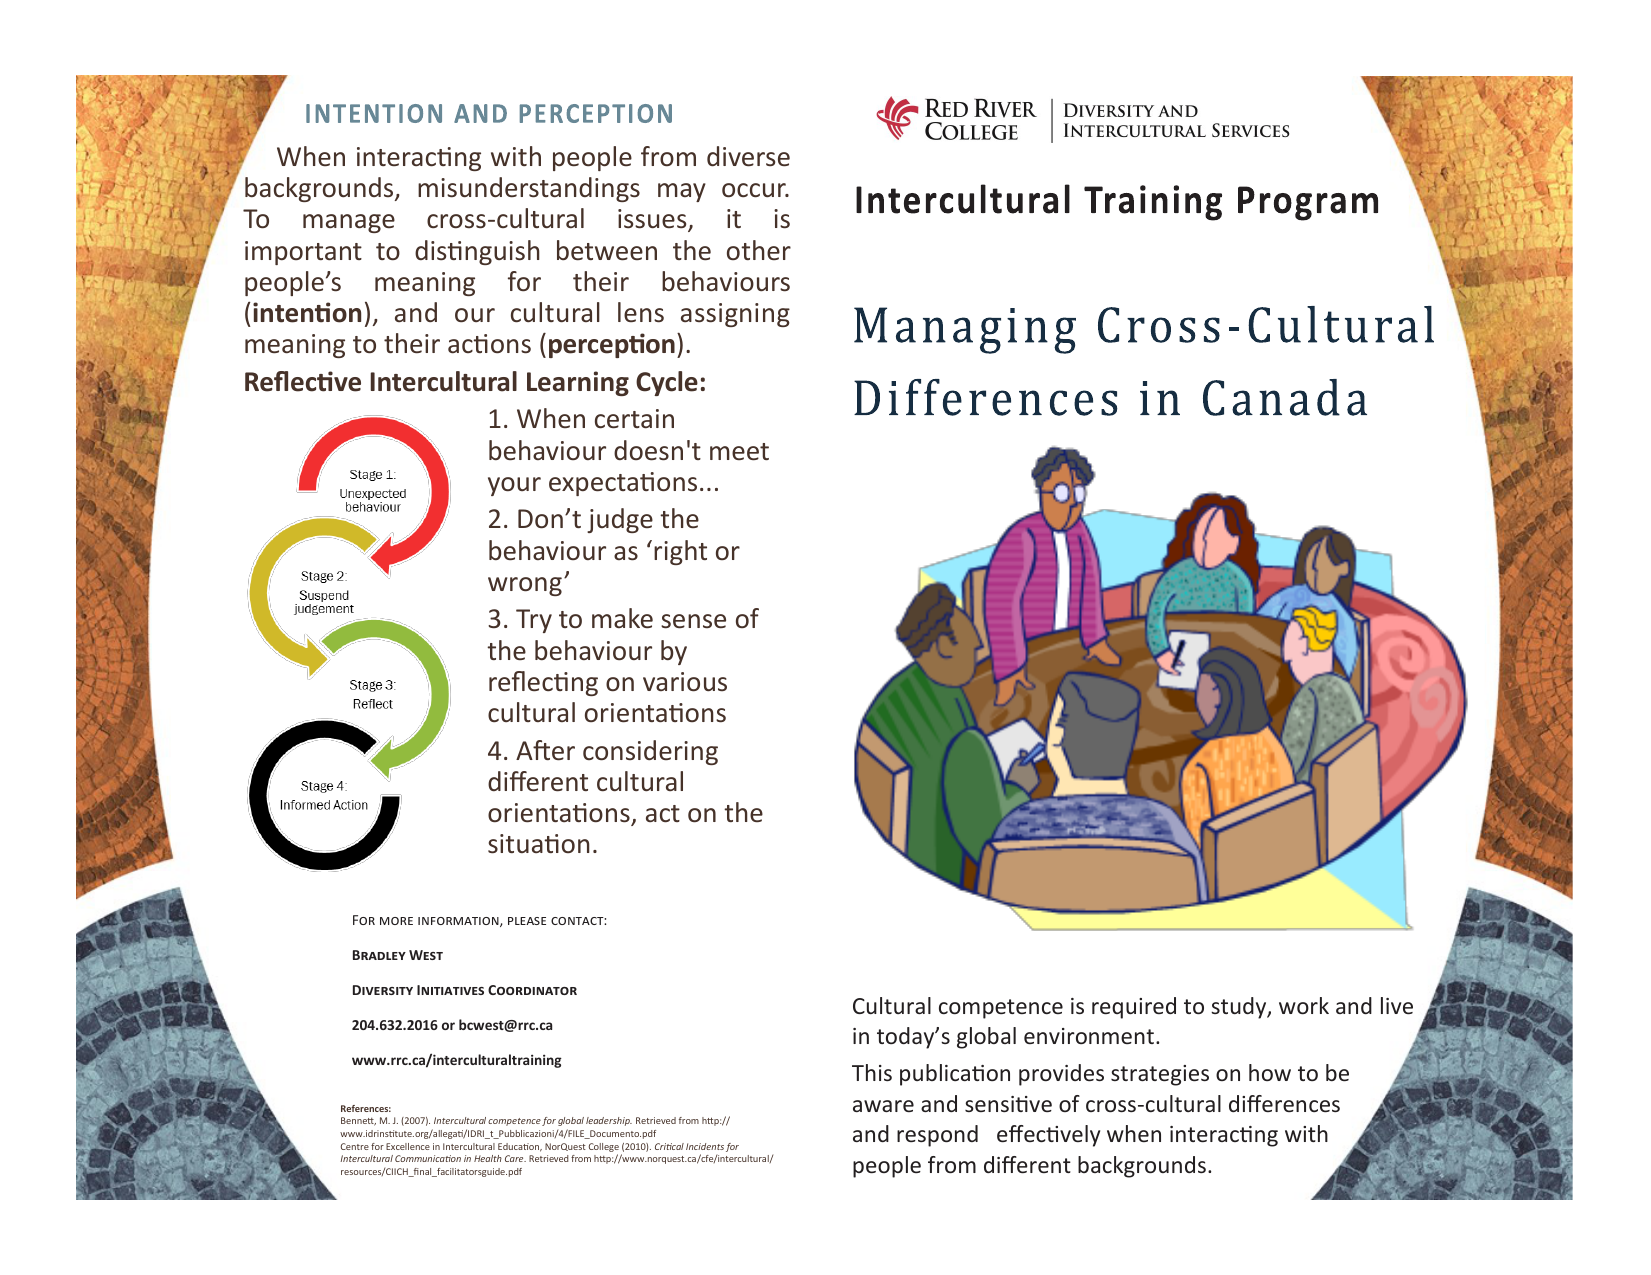 Managing Cross-Cultural Differences in Canada